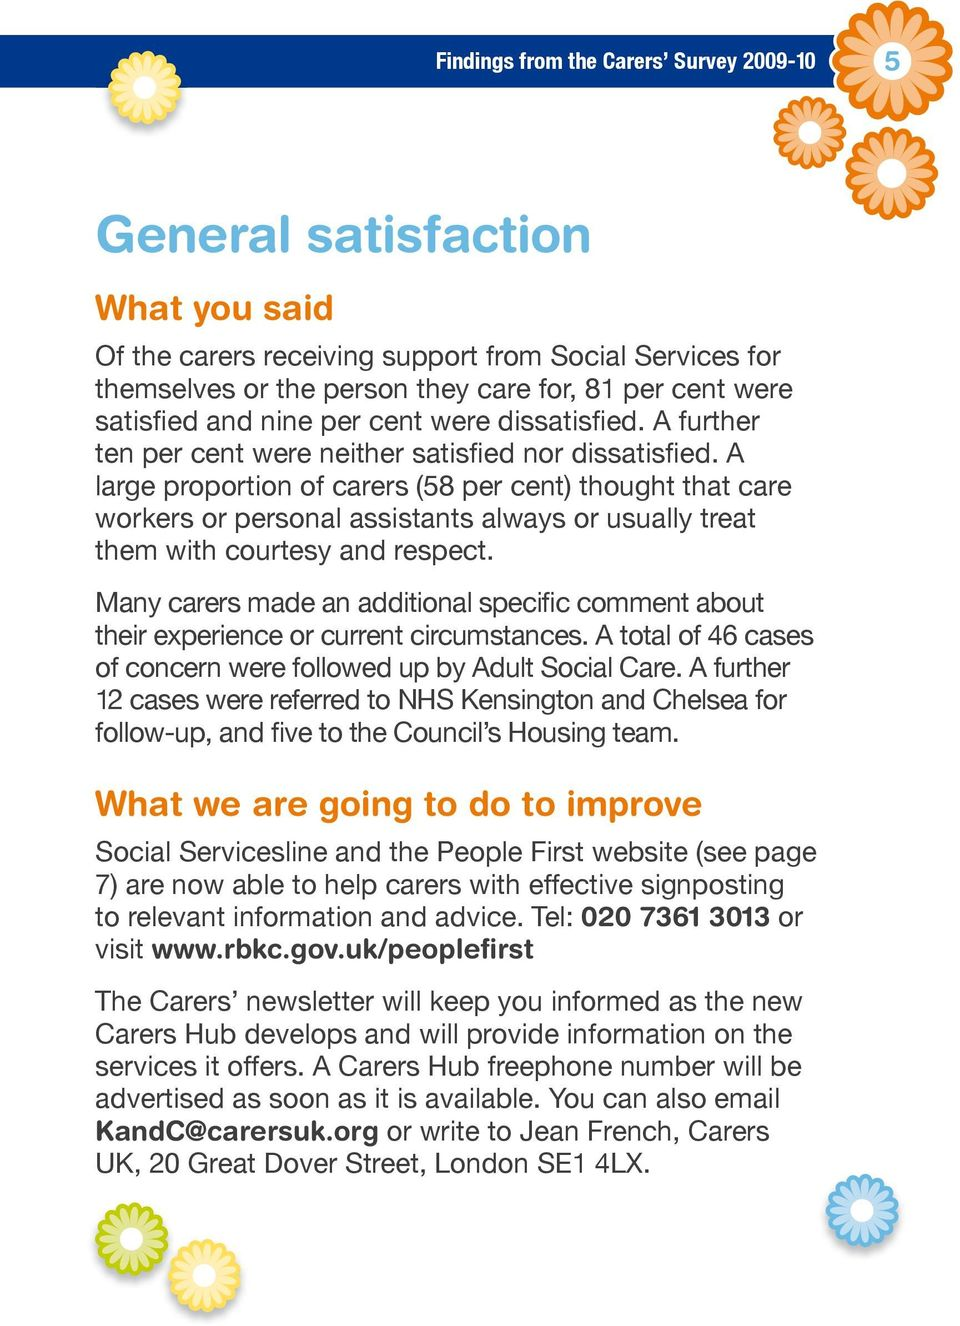 A large proportion of carers (58 per cent) thought that care workers or personal assistants always or usually treat them with courtesy and respect.